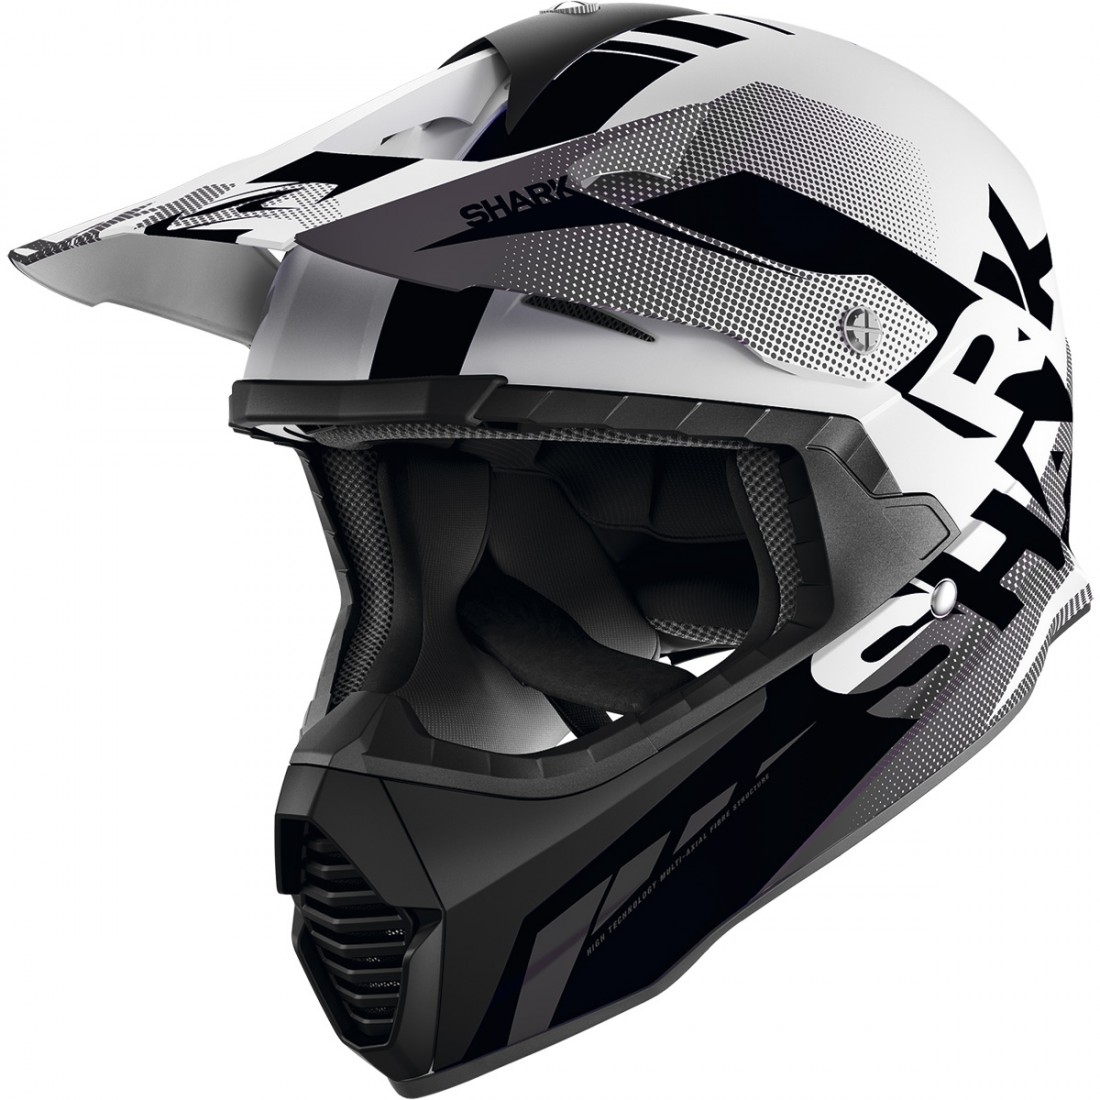 SHARK Varial Anger White / Black / Anthracite Helmet